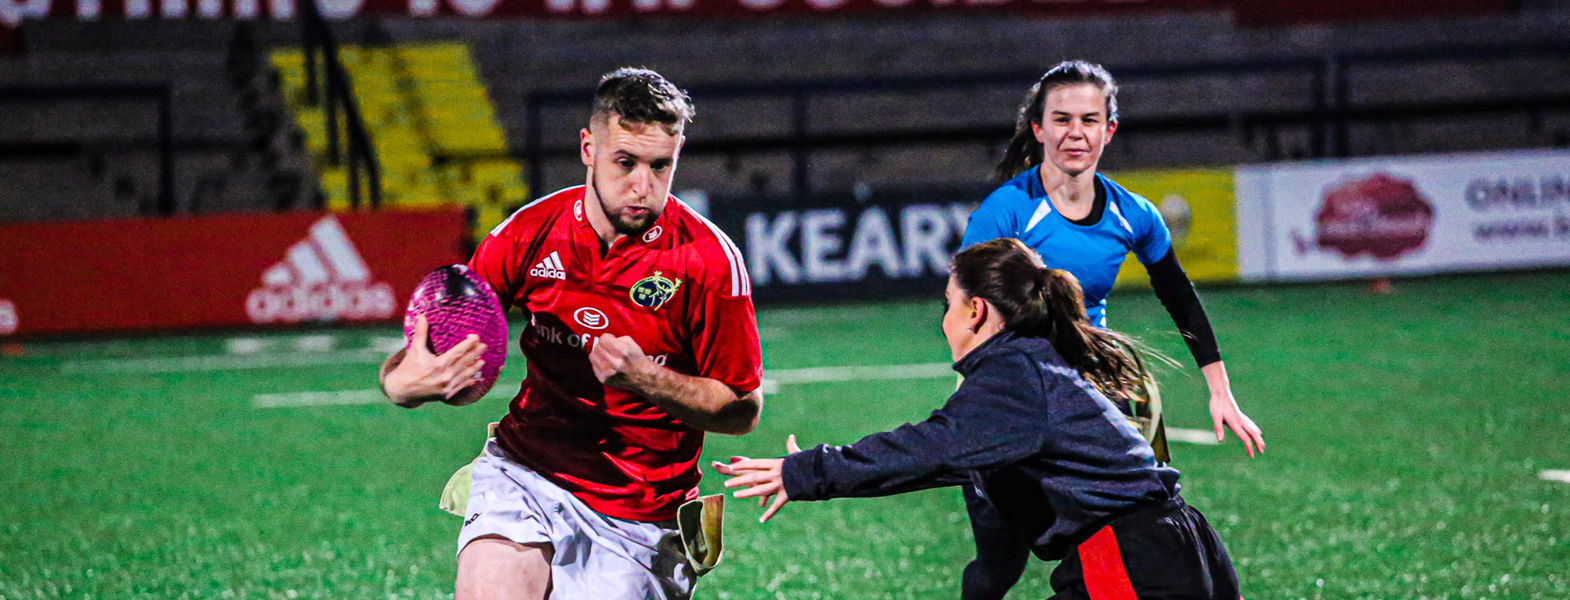 Cork Tag Rugby in Irish Independent Park